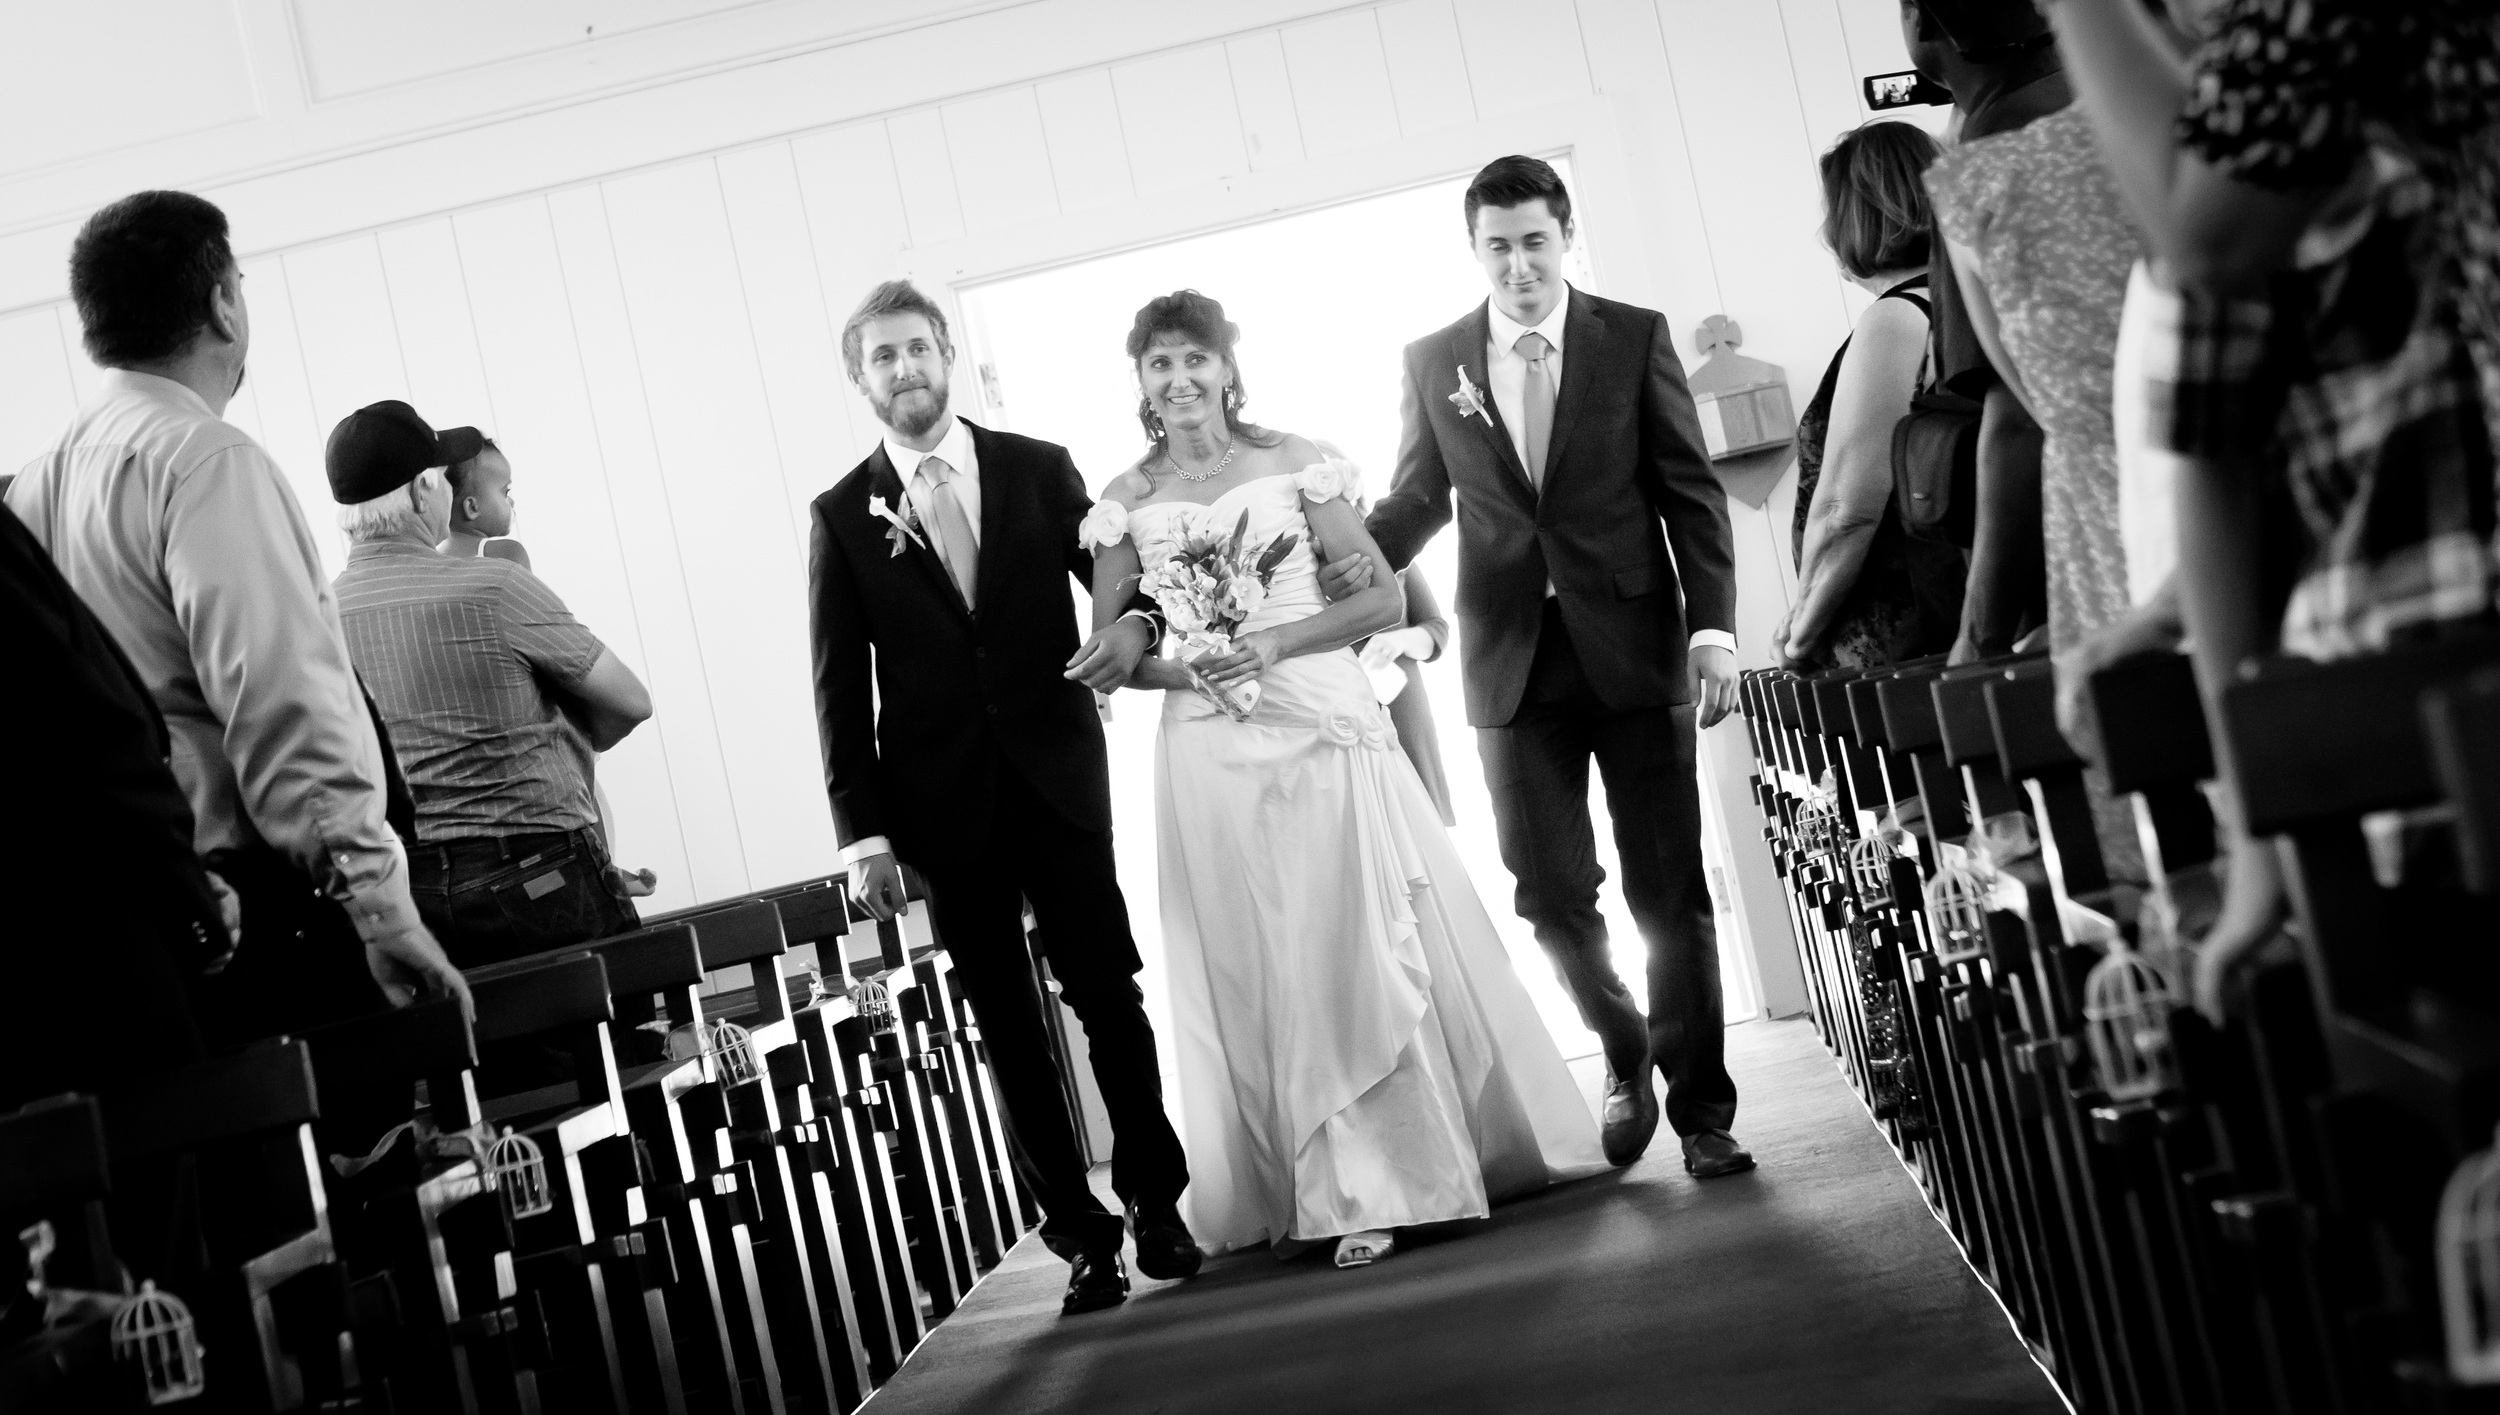 Lynn's sons walked her down the aisle...the BEST moment!!